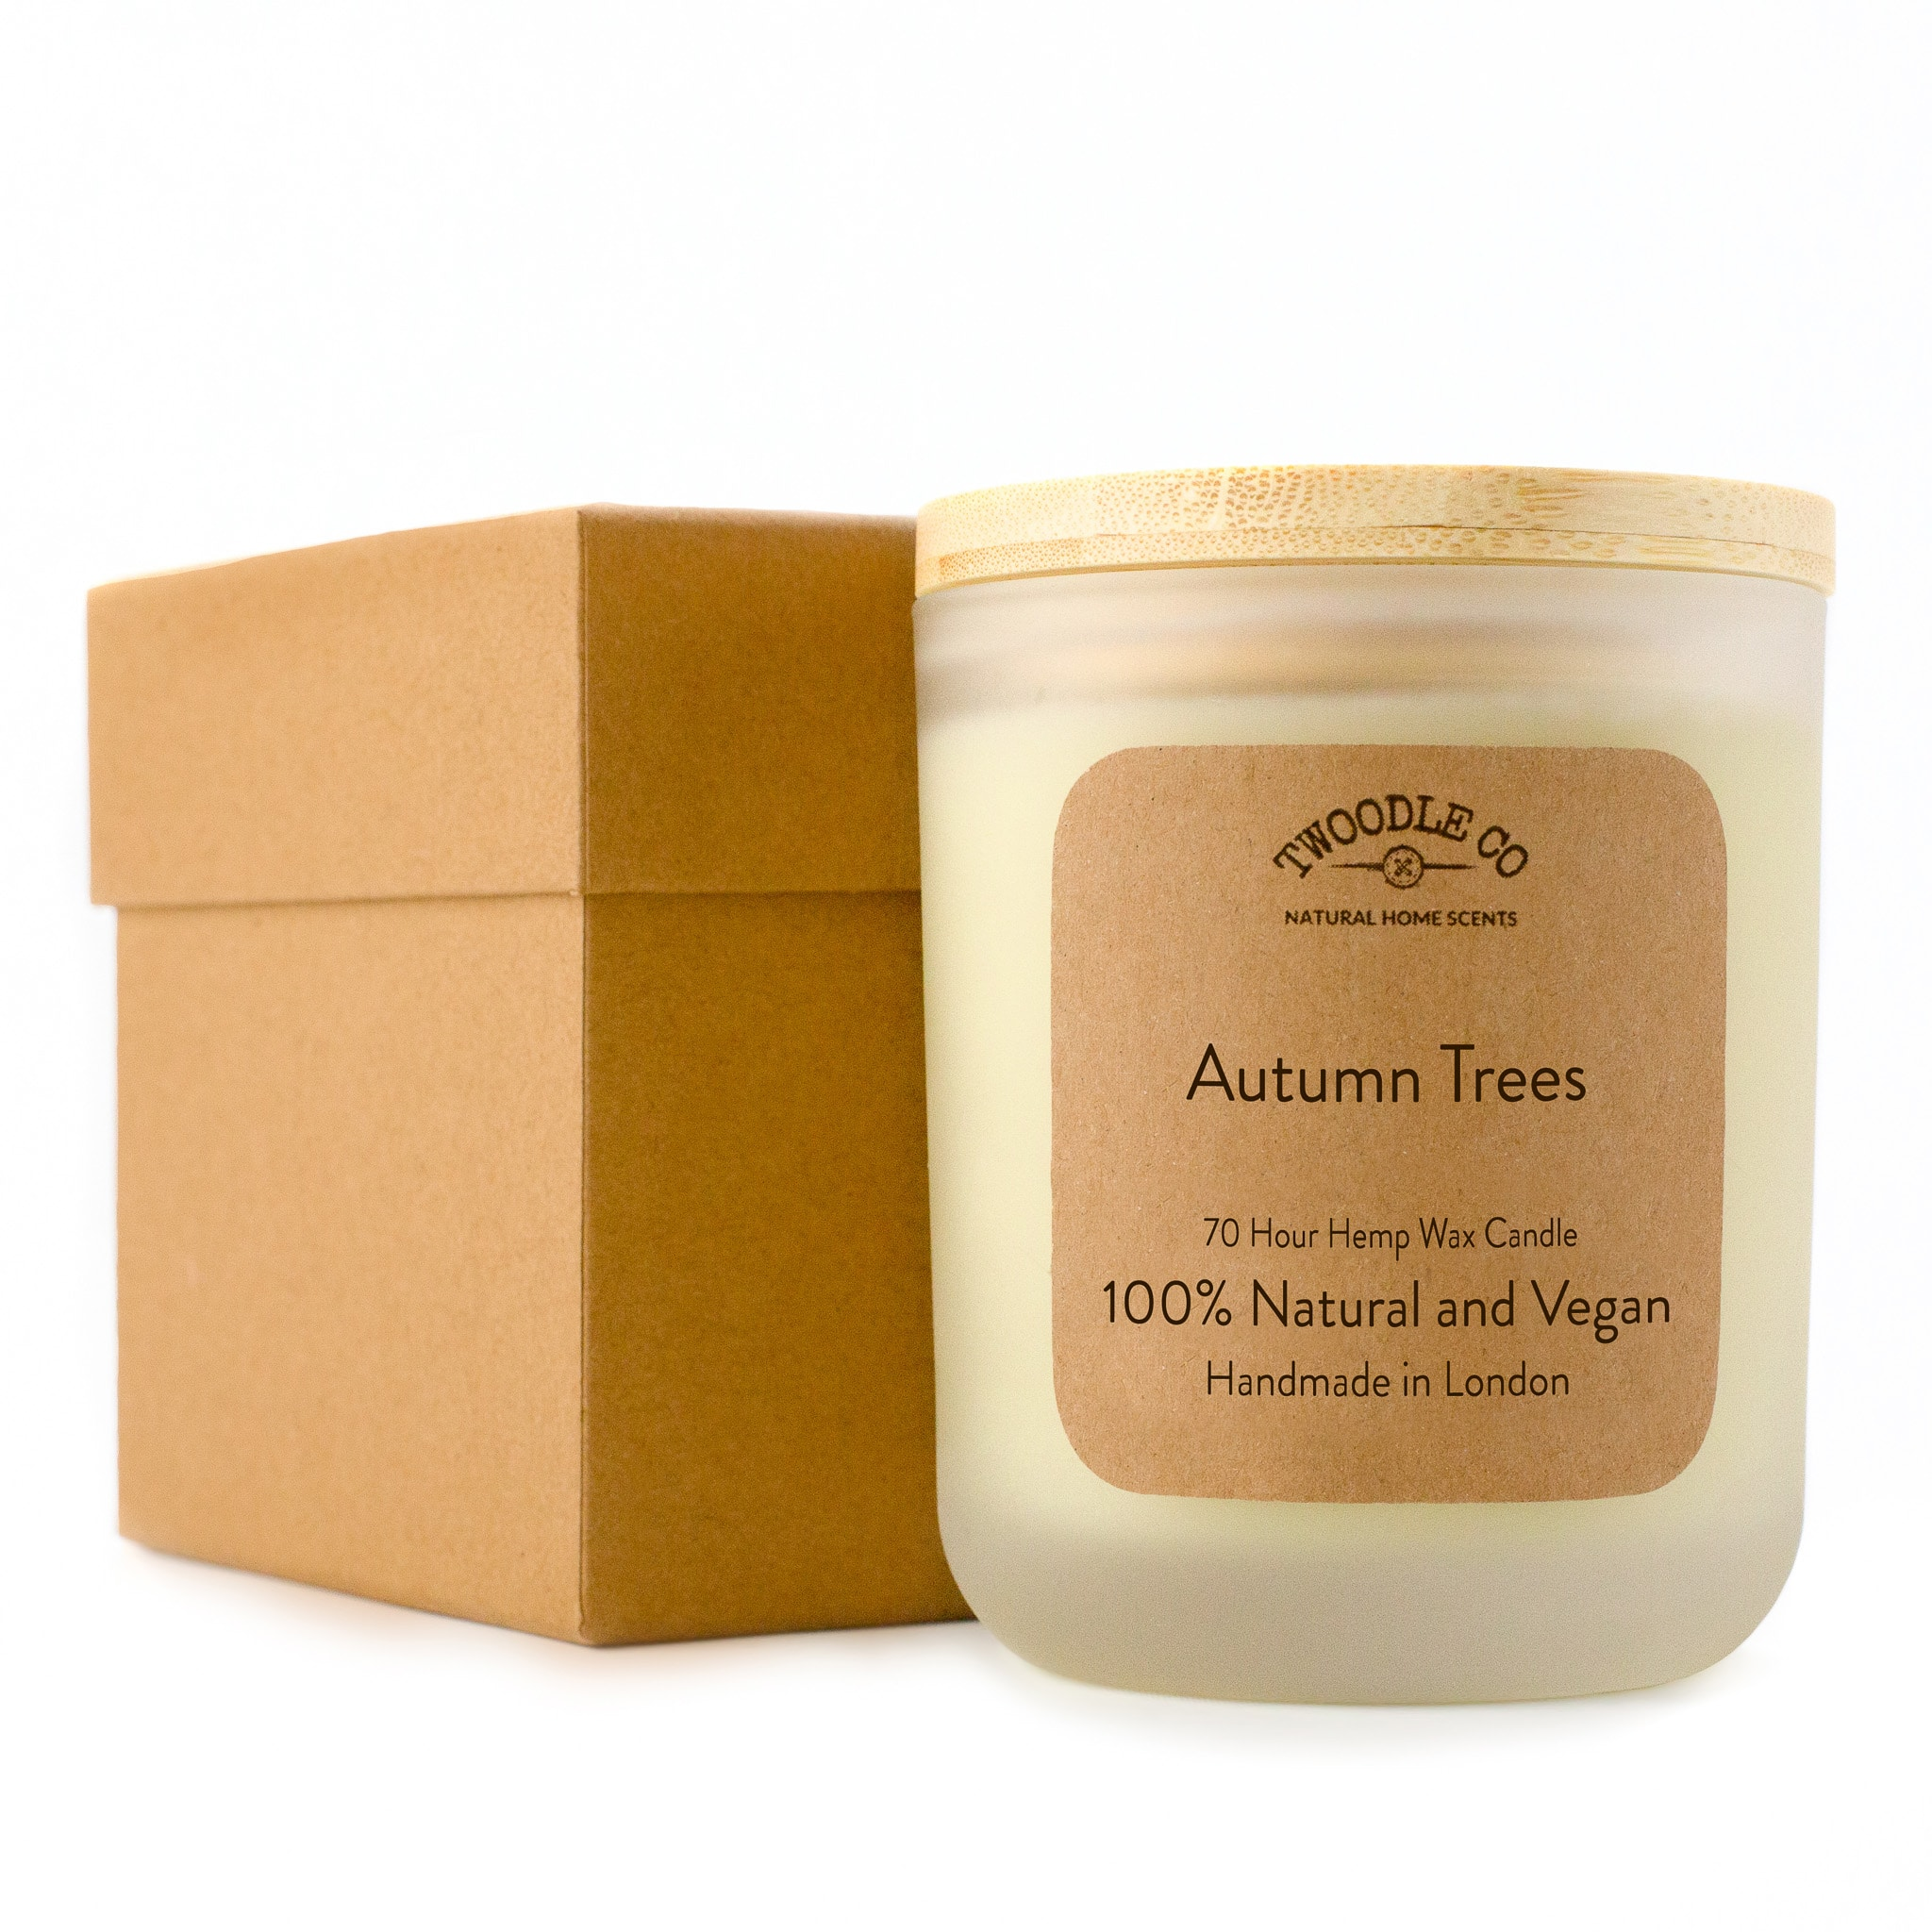 Autumn Trees Large Scented Candle 70 Hour